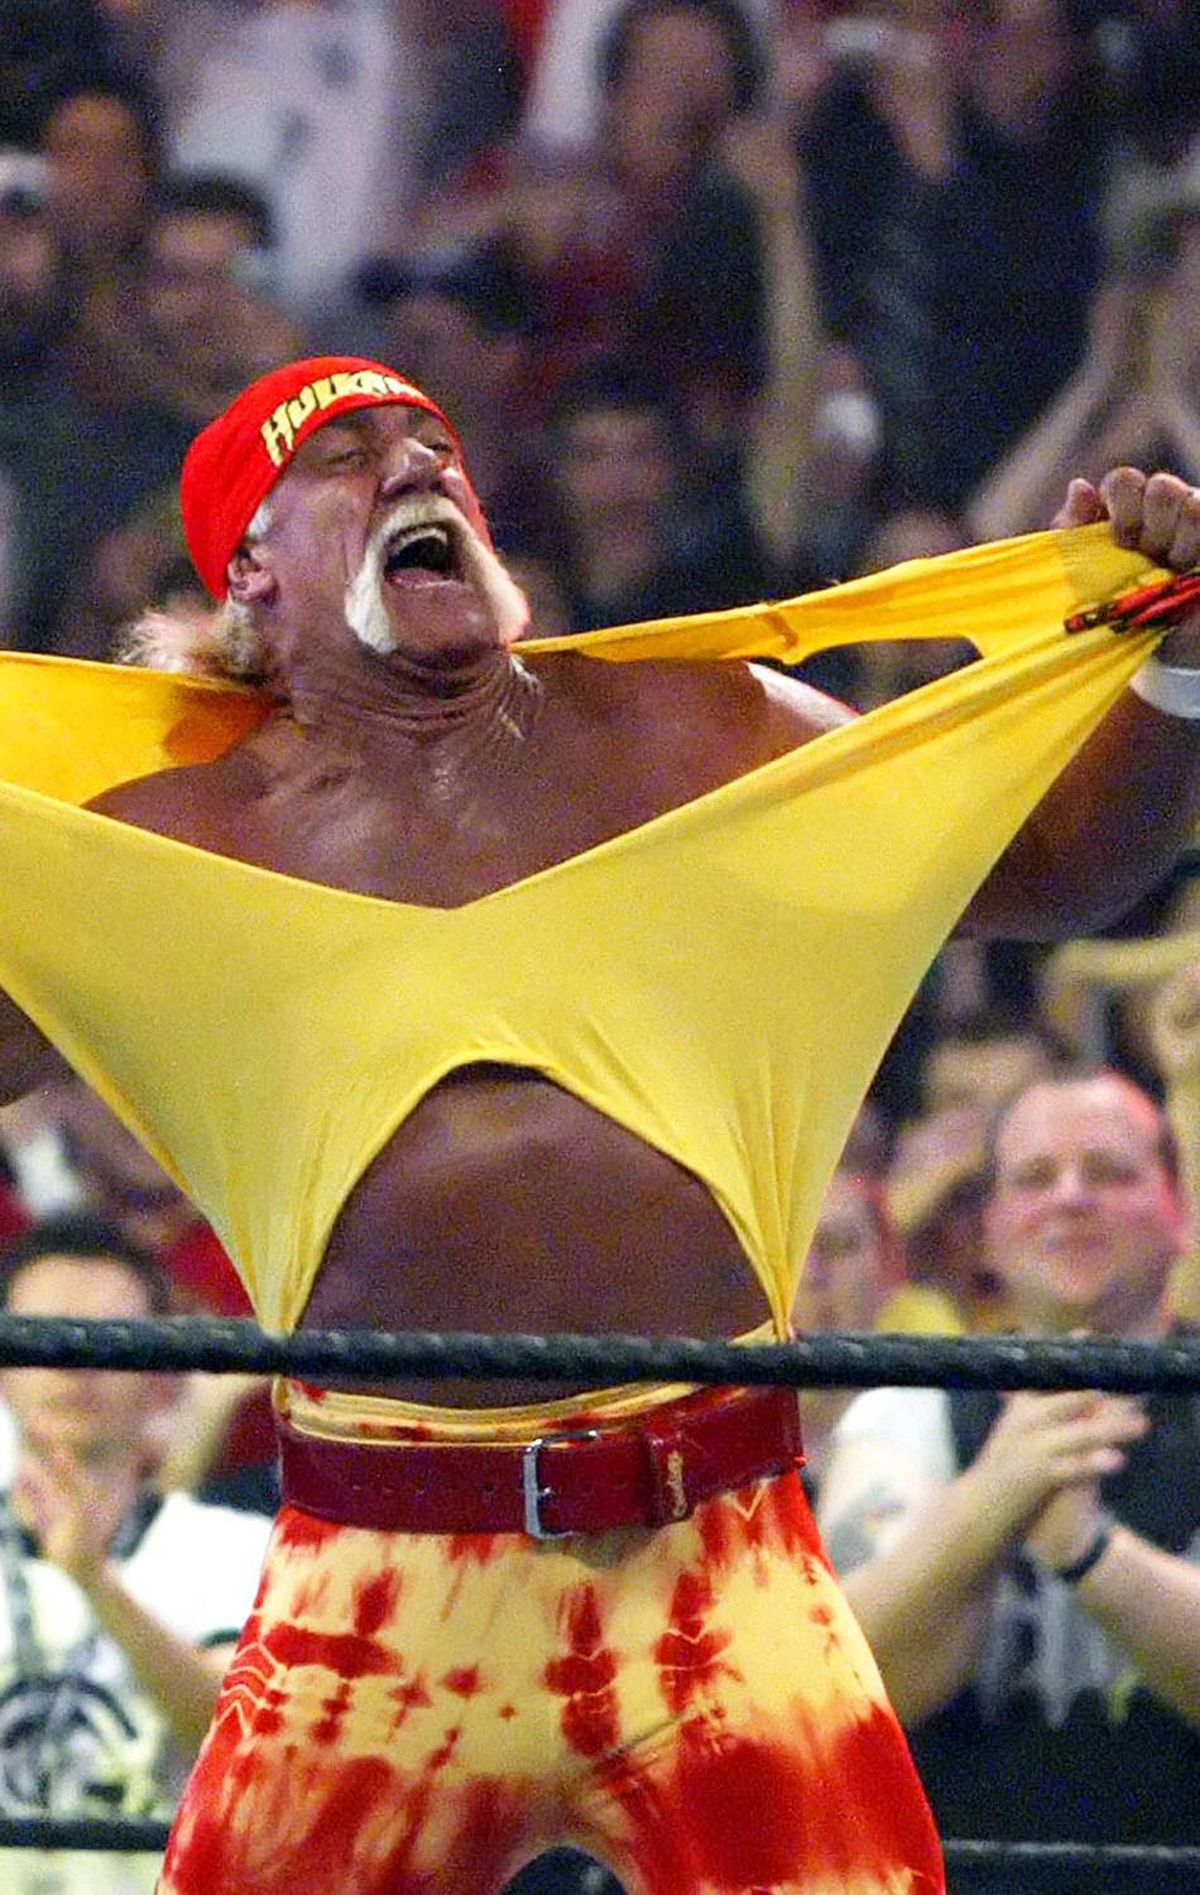 10. Hulk Hogan Okay, forget those bulging, monstrous muscles and startling grunts emerging from this man. If you met Hulk Hogan in a dark alley sans stache, would he be nearly as intimidating? We say nay.